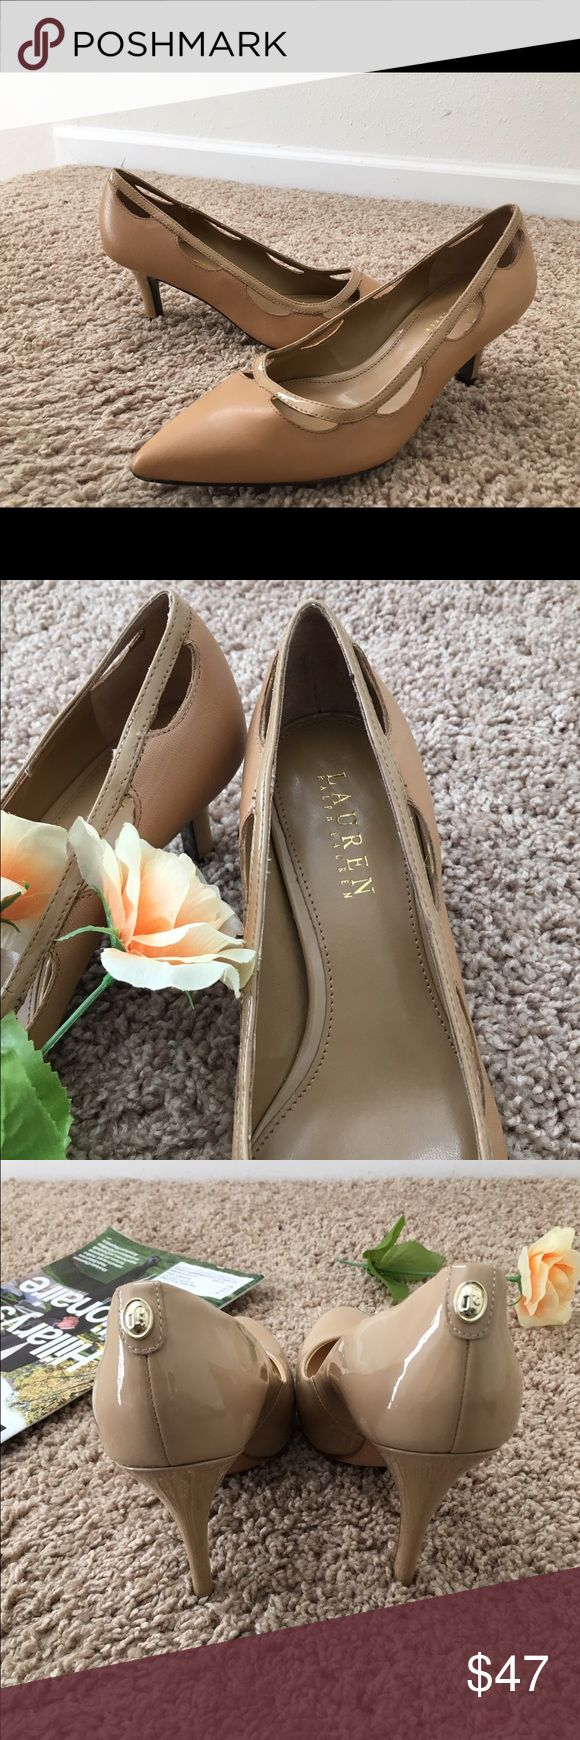 "LAUREN RALPH LAUREN Evie Leather Camel Heel The Lauren Ralph Lauren leather dress shoes features a leather upper with a pointed toe. Man-made outside lends lasting traction and wear. 2"" heel, Solid pattern, Width - Medium ( B,M) . Lauren Ralph Lauren Shoes Heels"